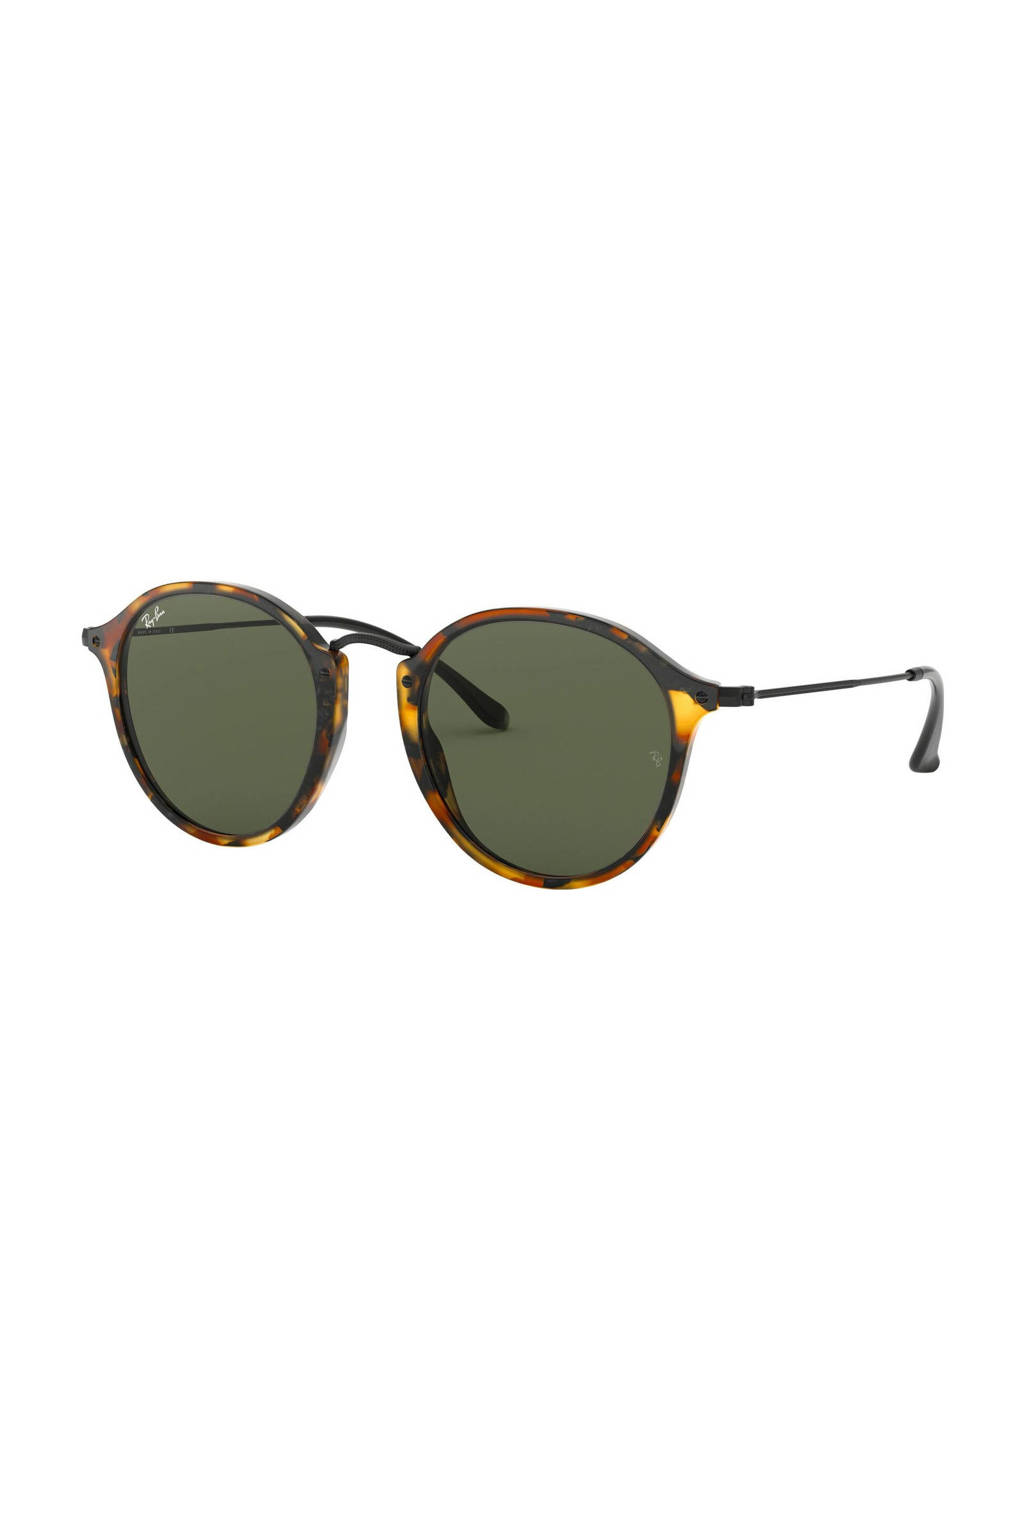 Ray-Ban zonnebril 0RB2447, Groen